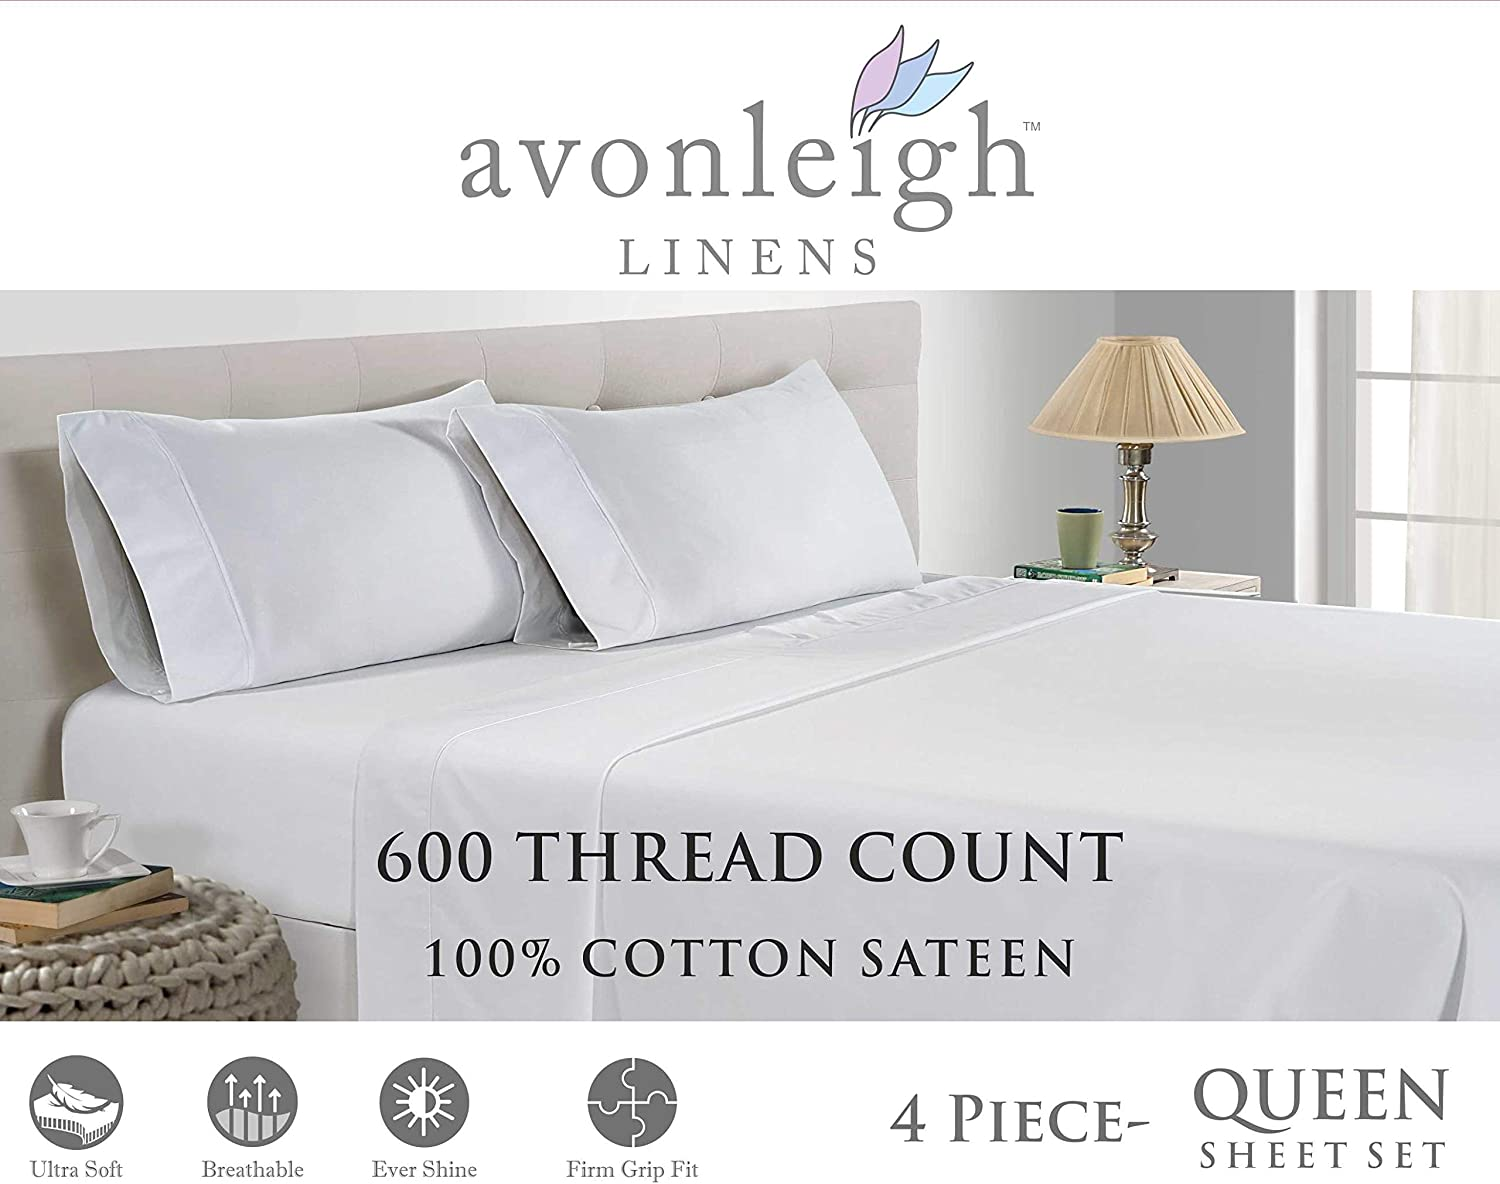 Ultrasoft Feathery Touch and Silky Sateen Weave 600 Thread Count 100/% Cotton Sheet-Cloud Blue-Cal King Sheet Set,4 Piece Long Staple Combed Cotton Sheet Set Fits Mattress Upto 18 Inches Deep Pocket